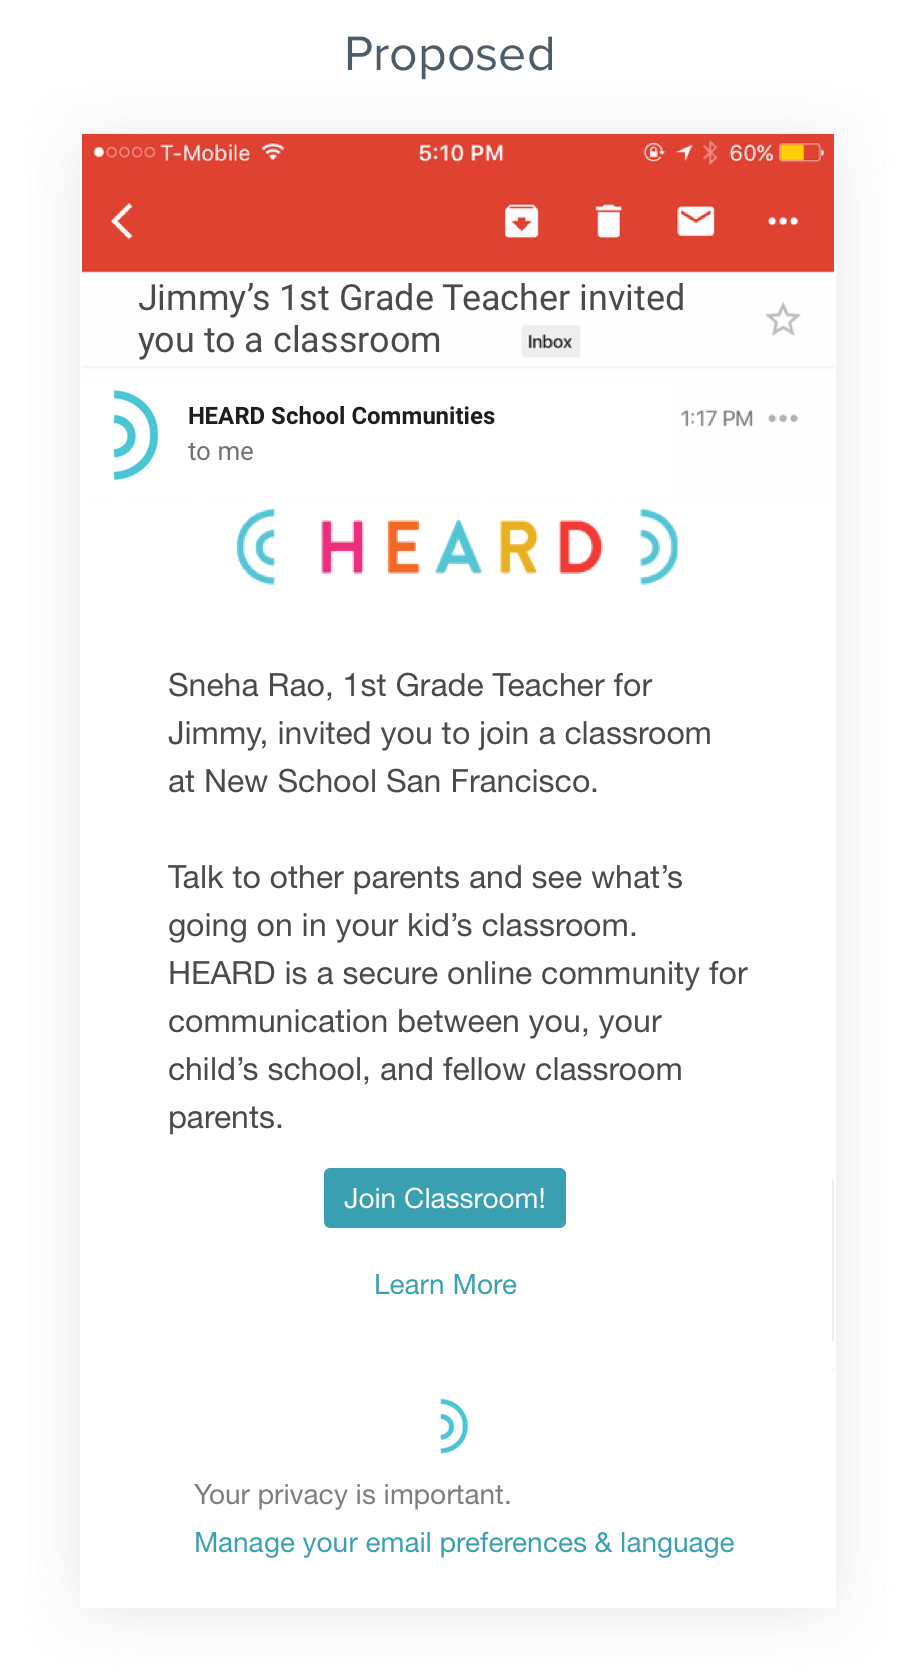 1115_Onboarding_1 - Email Invitation.png